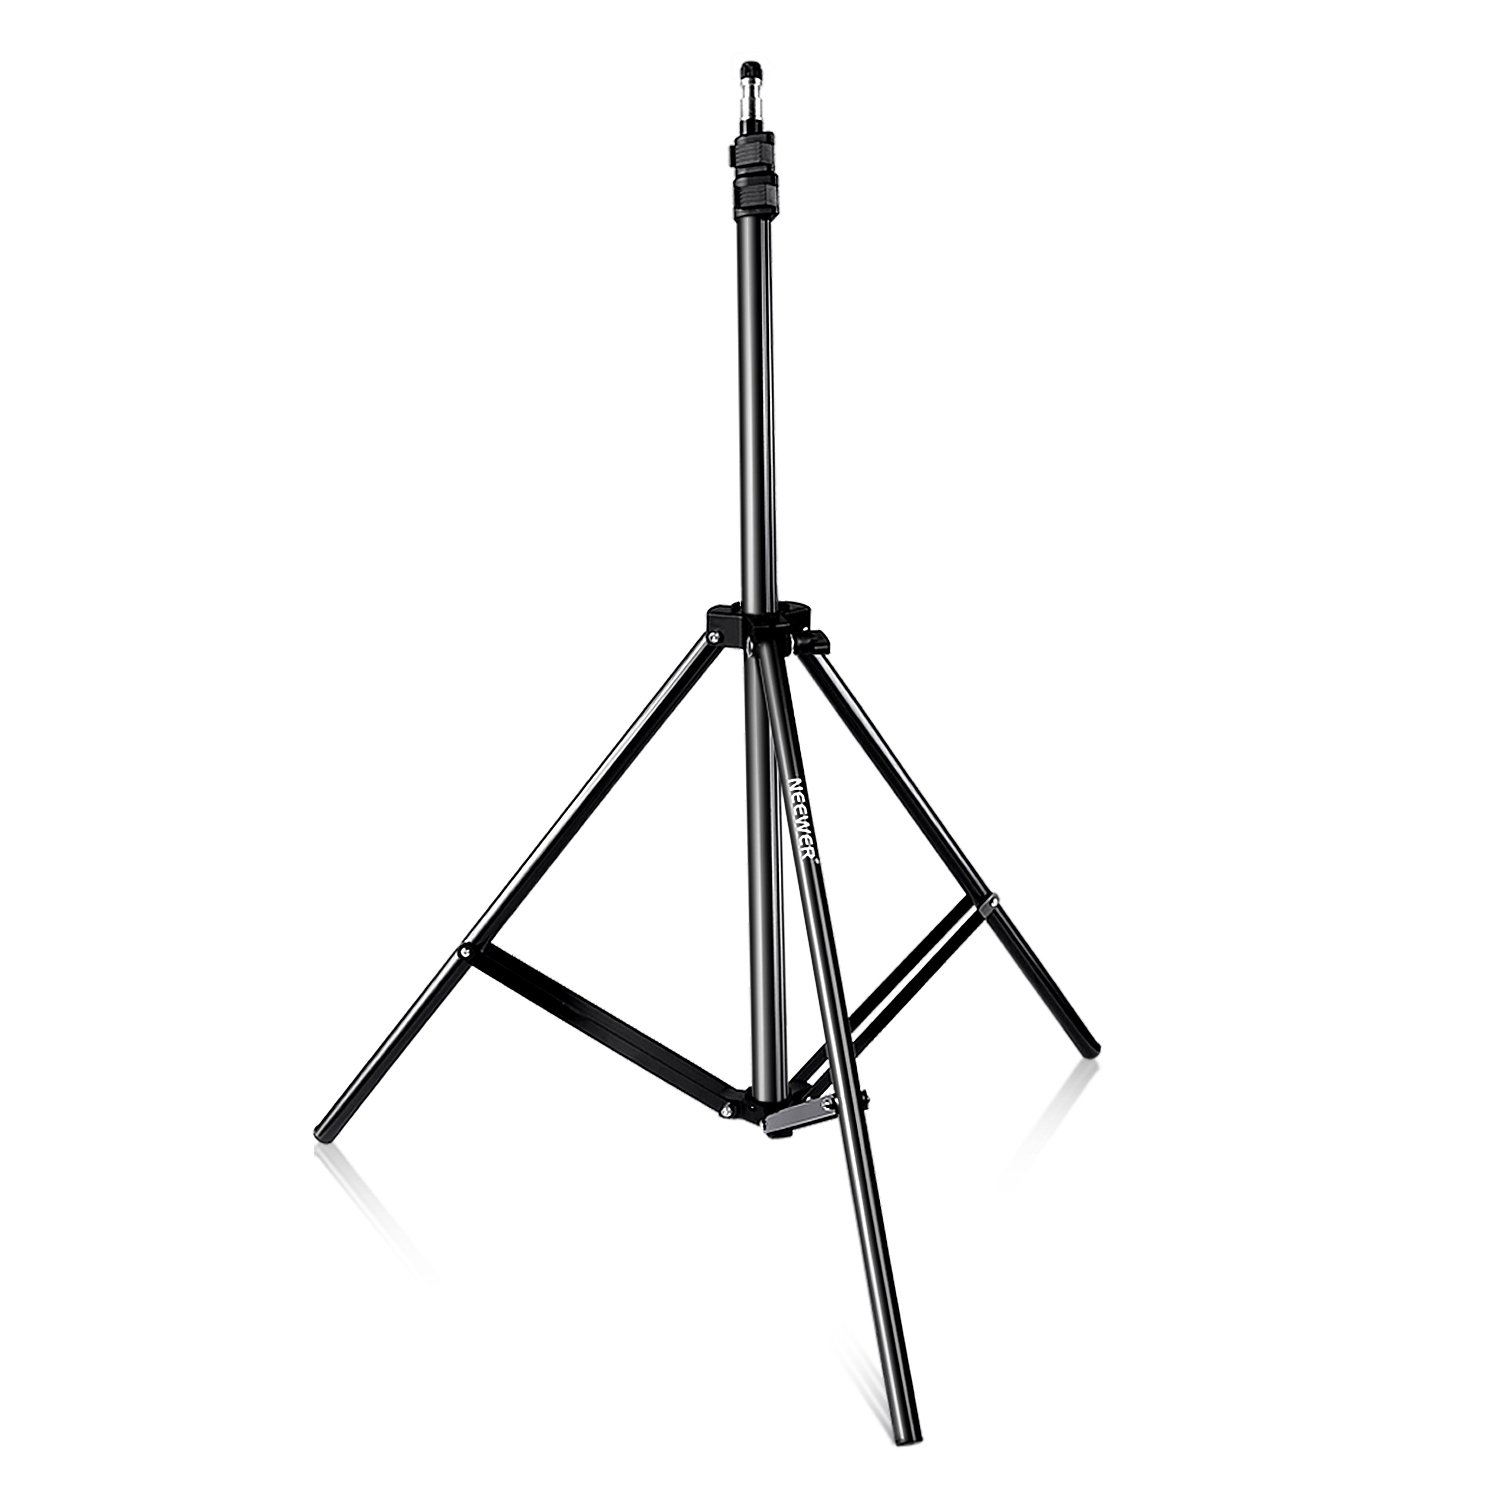 Neewer® 7 Feet / 210cm Photography Photo Studio Light Stands for Video, Portrait, and Photography Lighting 10084210